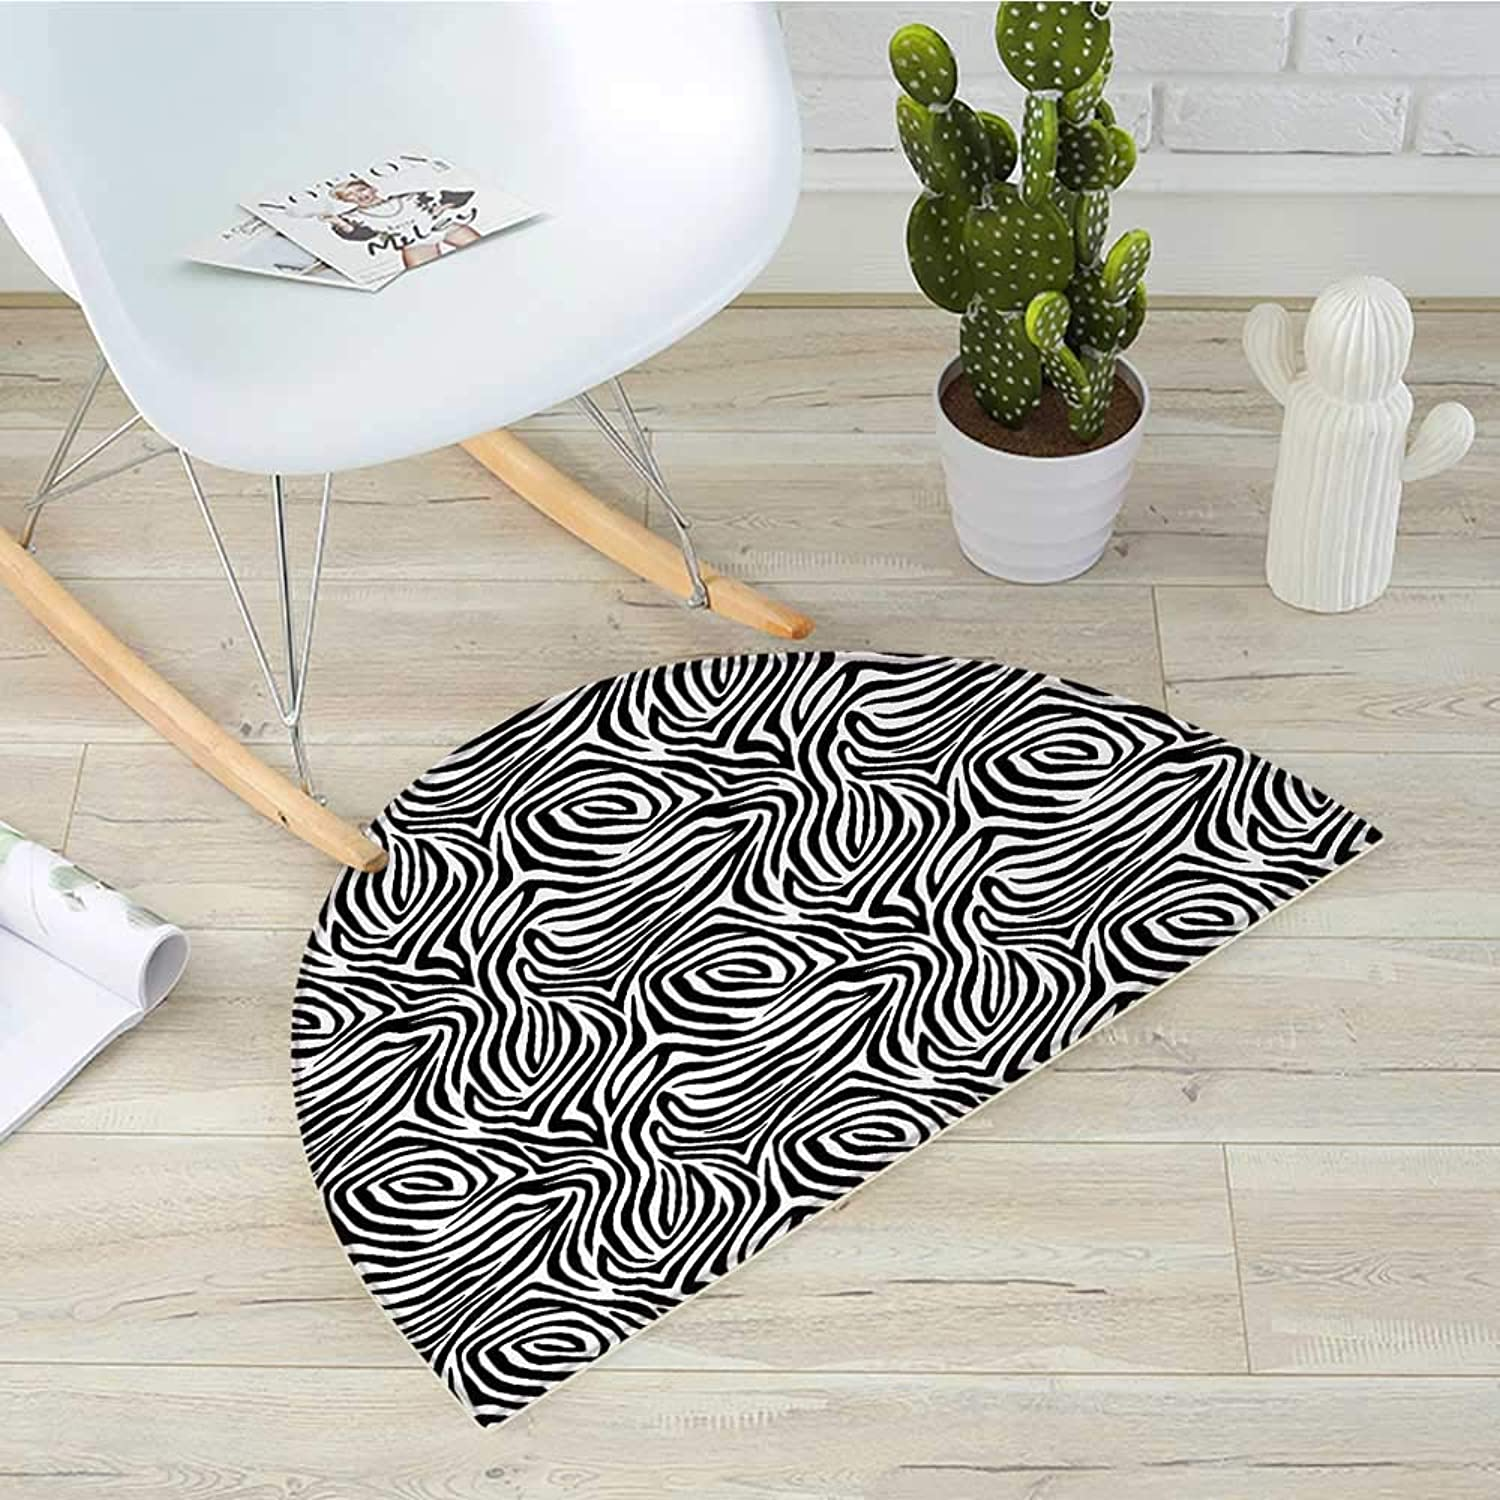 Stripes Semicircular CushionAfrican Zebra Skin Pattern with Abstract Lines Monochrome Wild Animal Hide Design Entry Door Mat H 31.5  xD 47.2  Black White